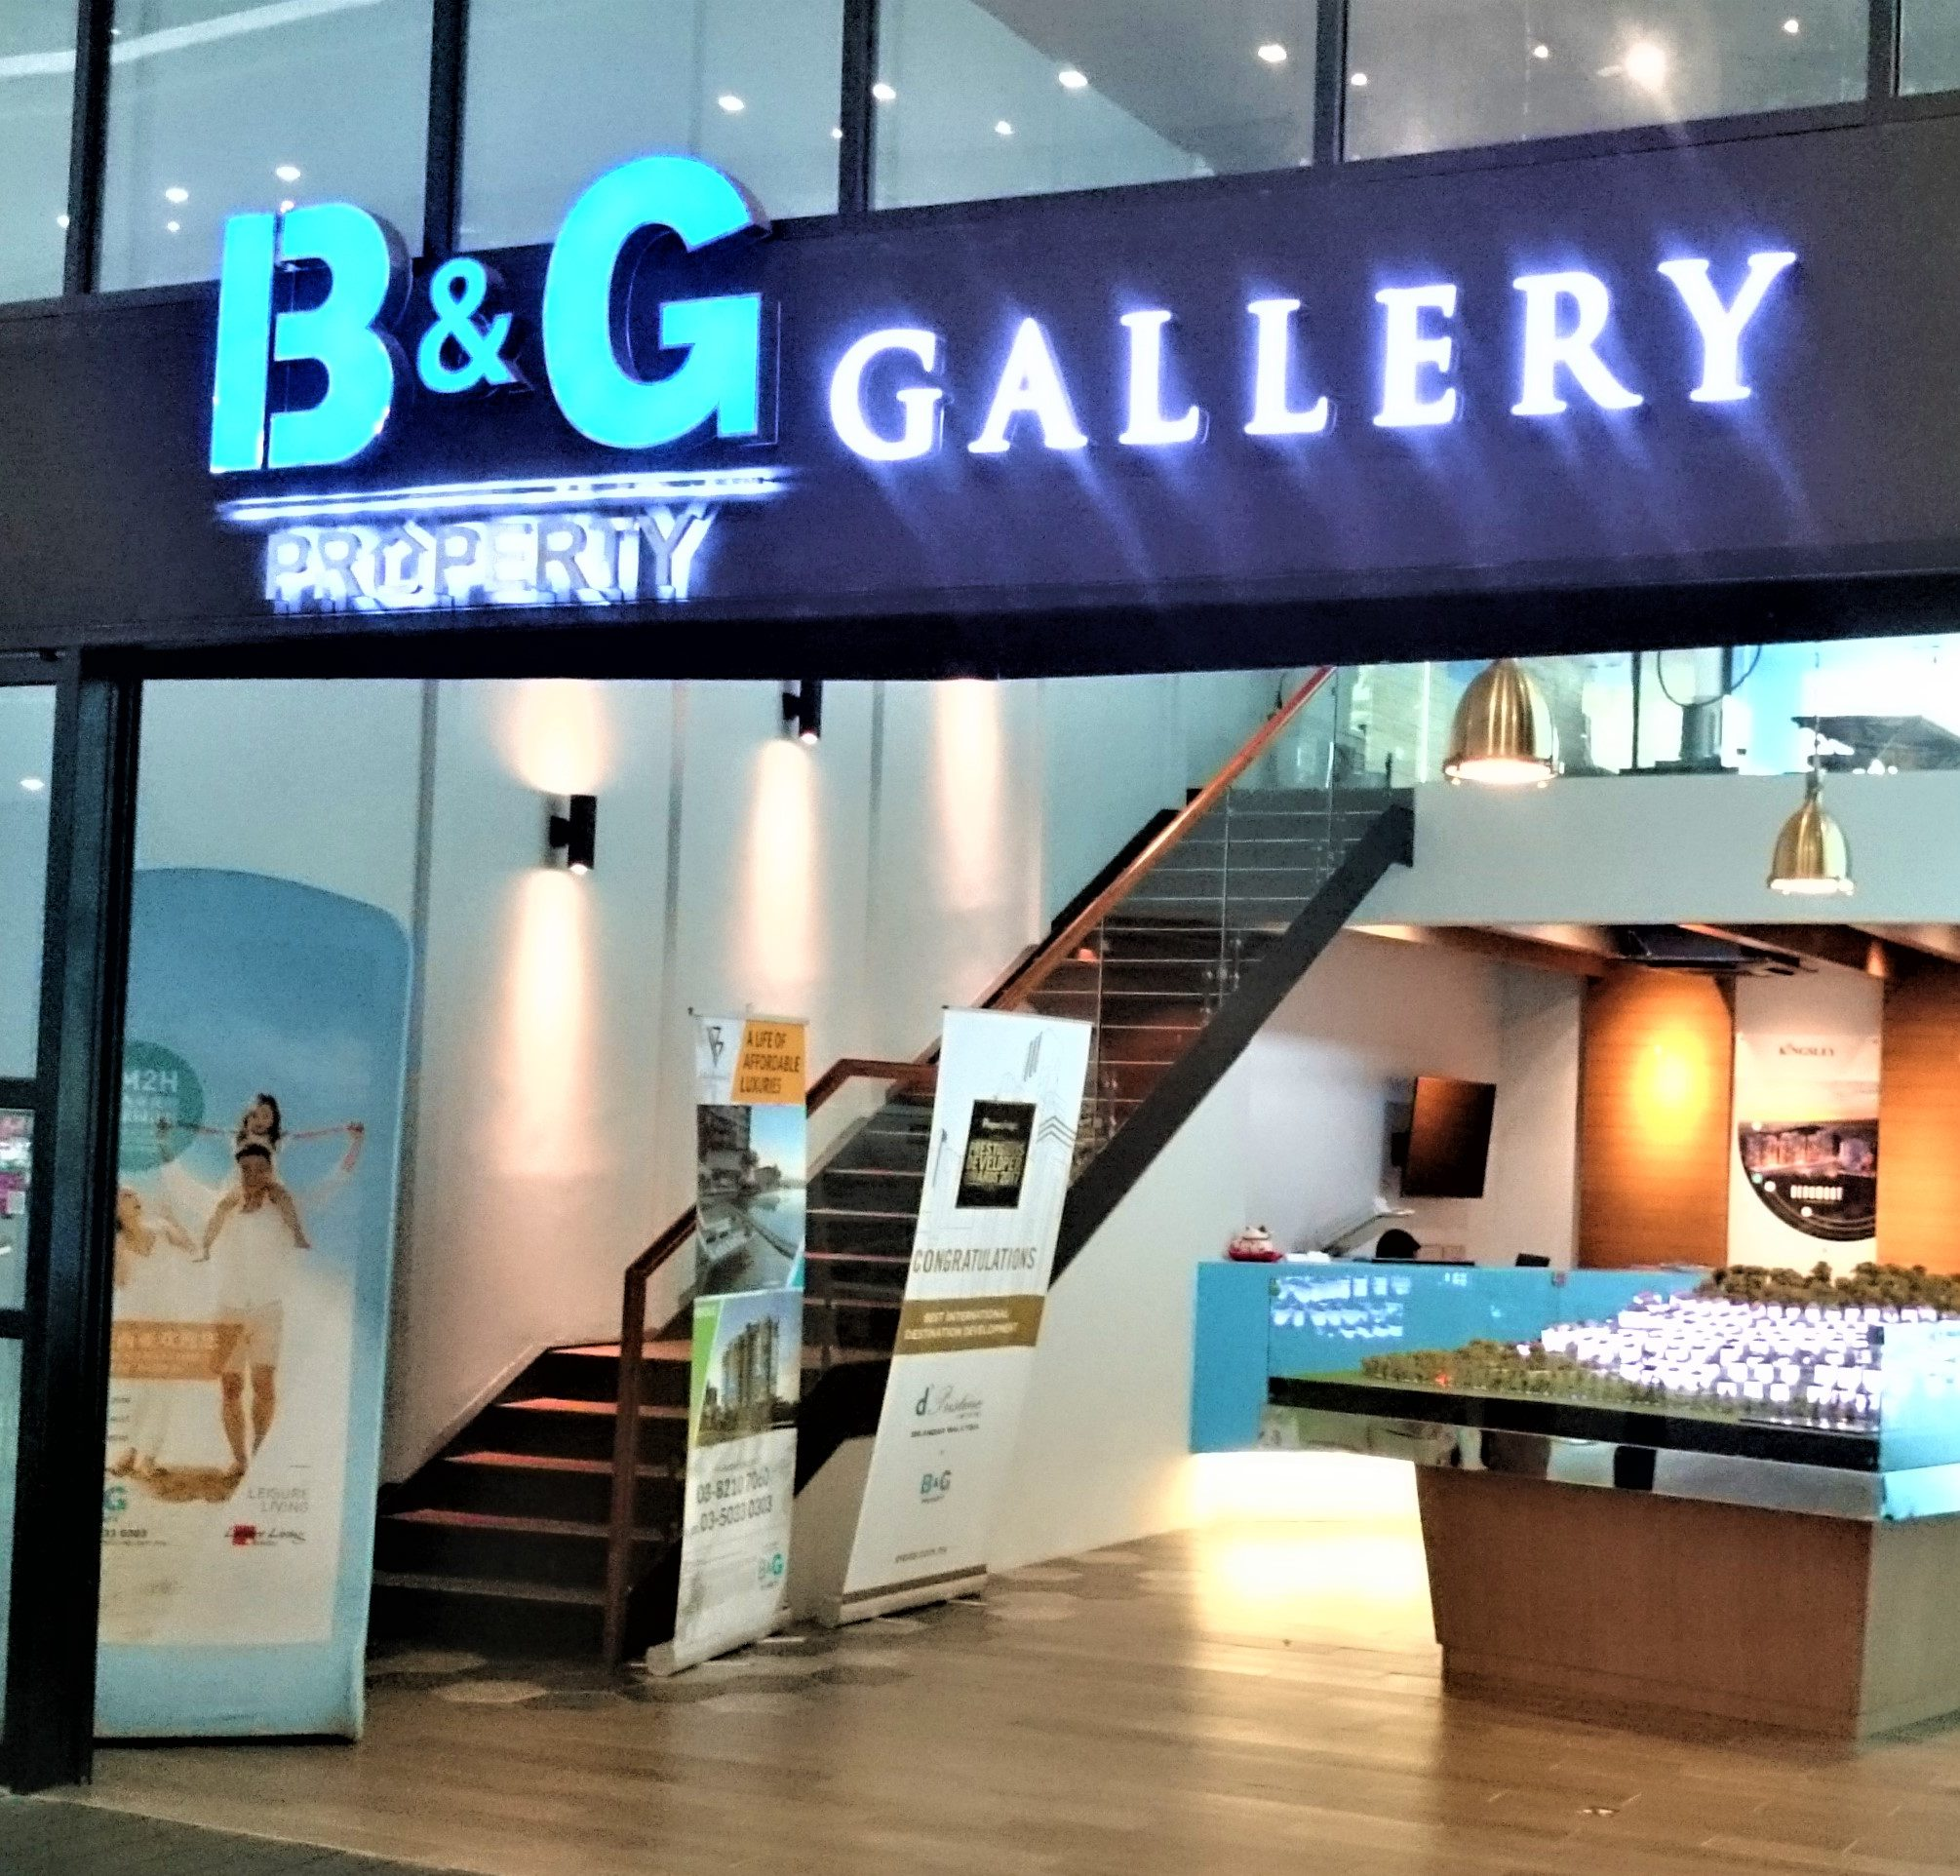 B&G PROPERTY GALLERY (2)